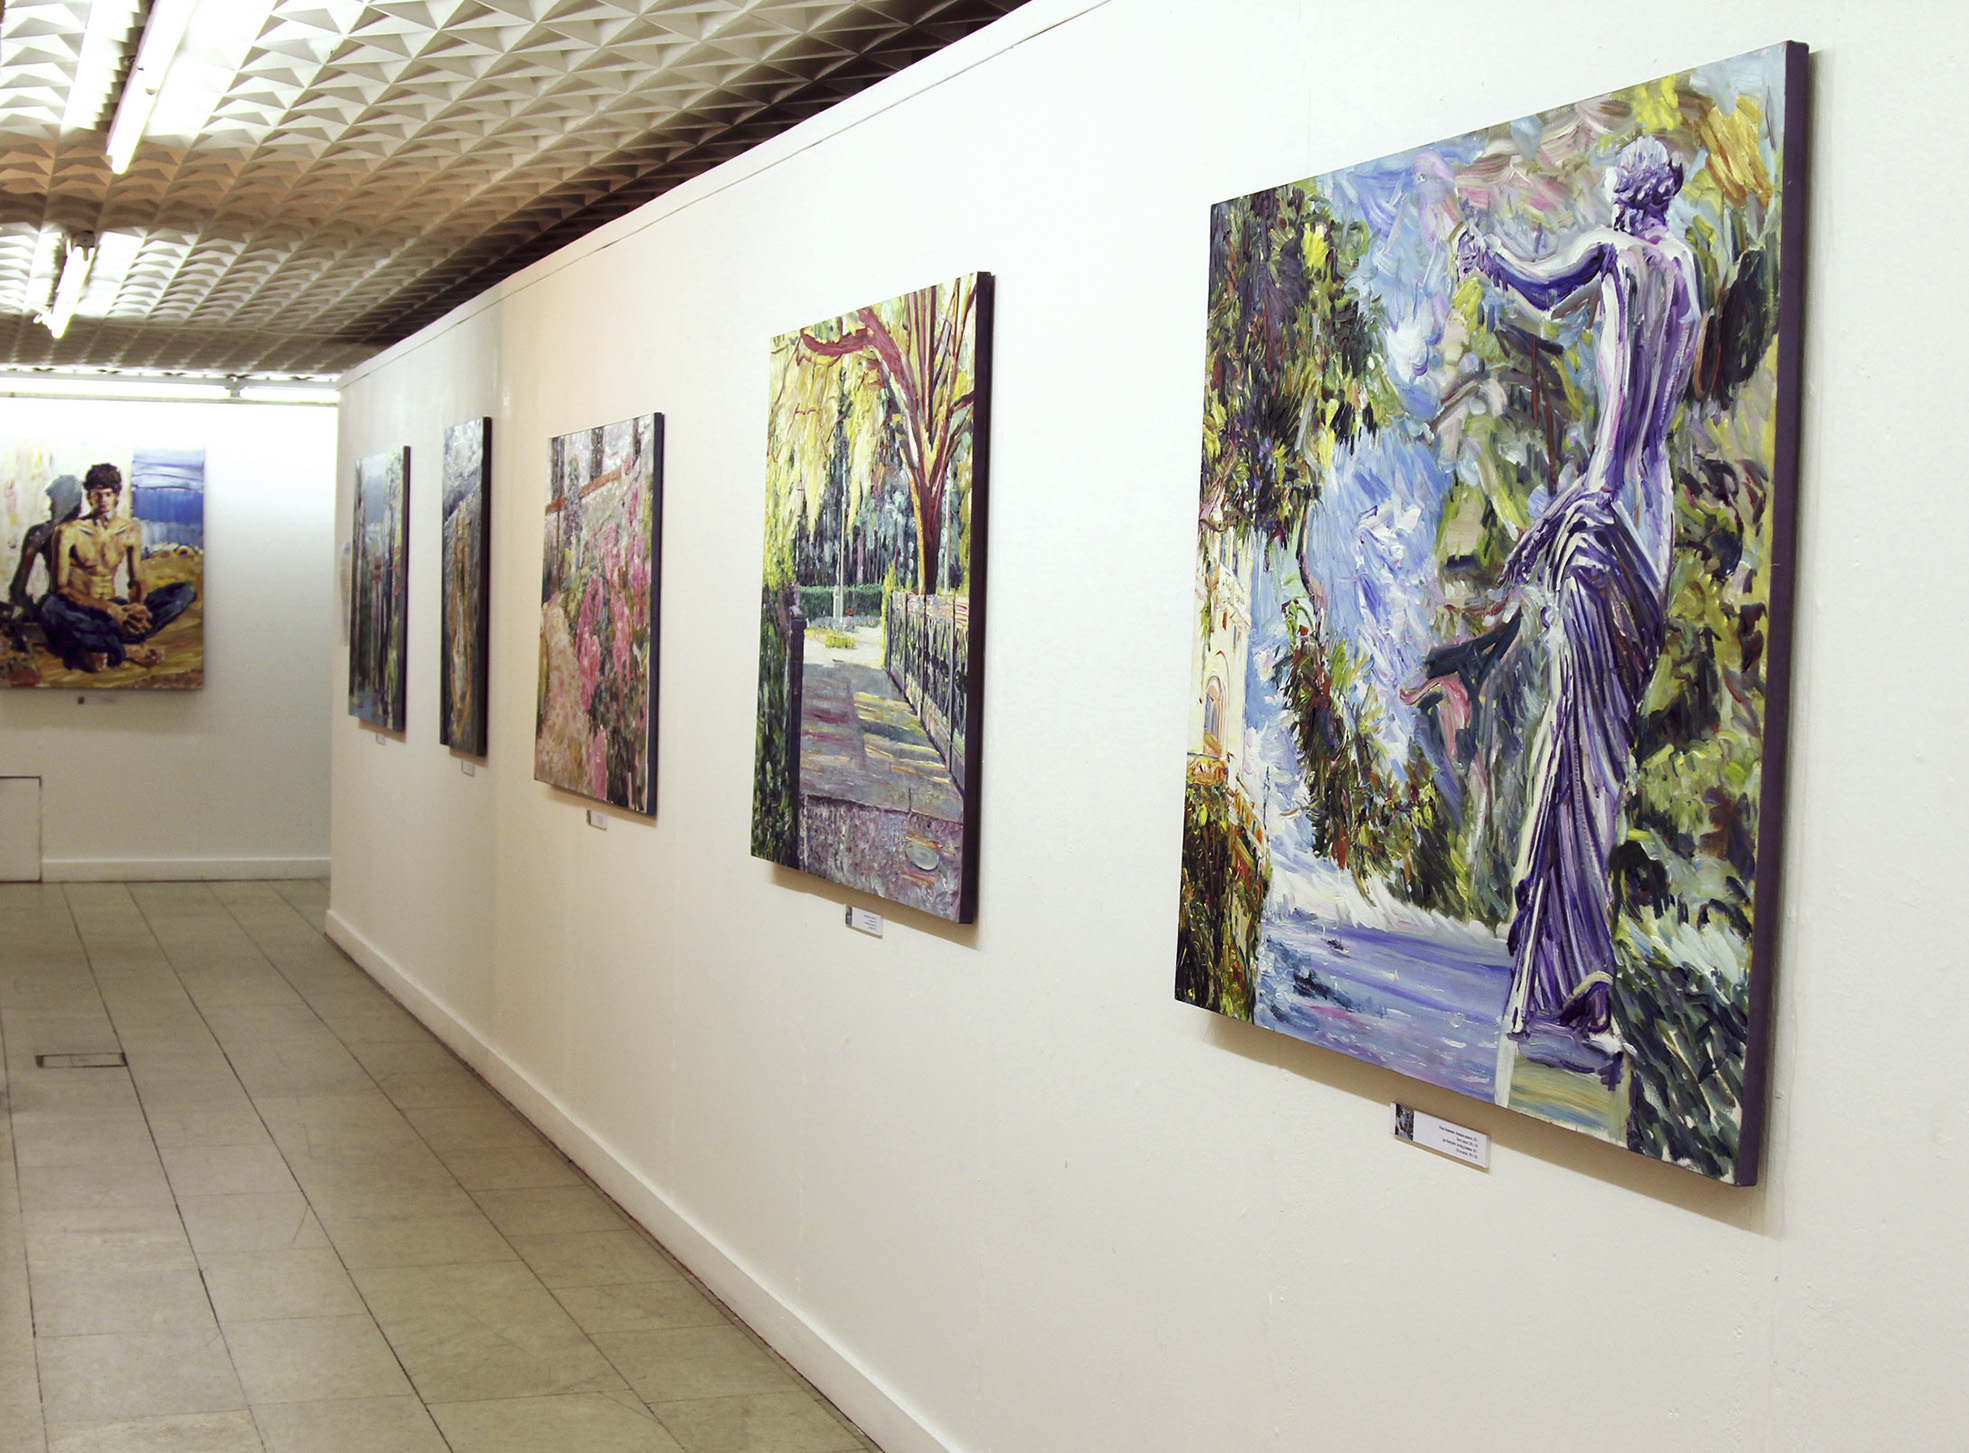 The exhibition 'Inviting Freshness'. The Central House of Artists, Moscow, 27.07 - 27.08.2012